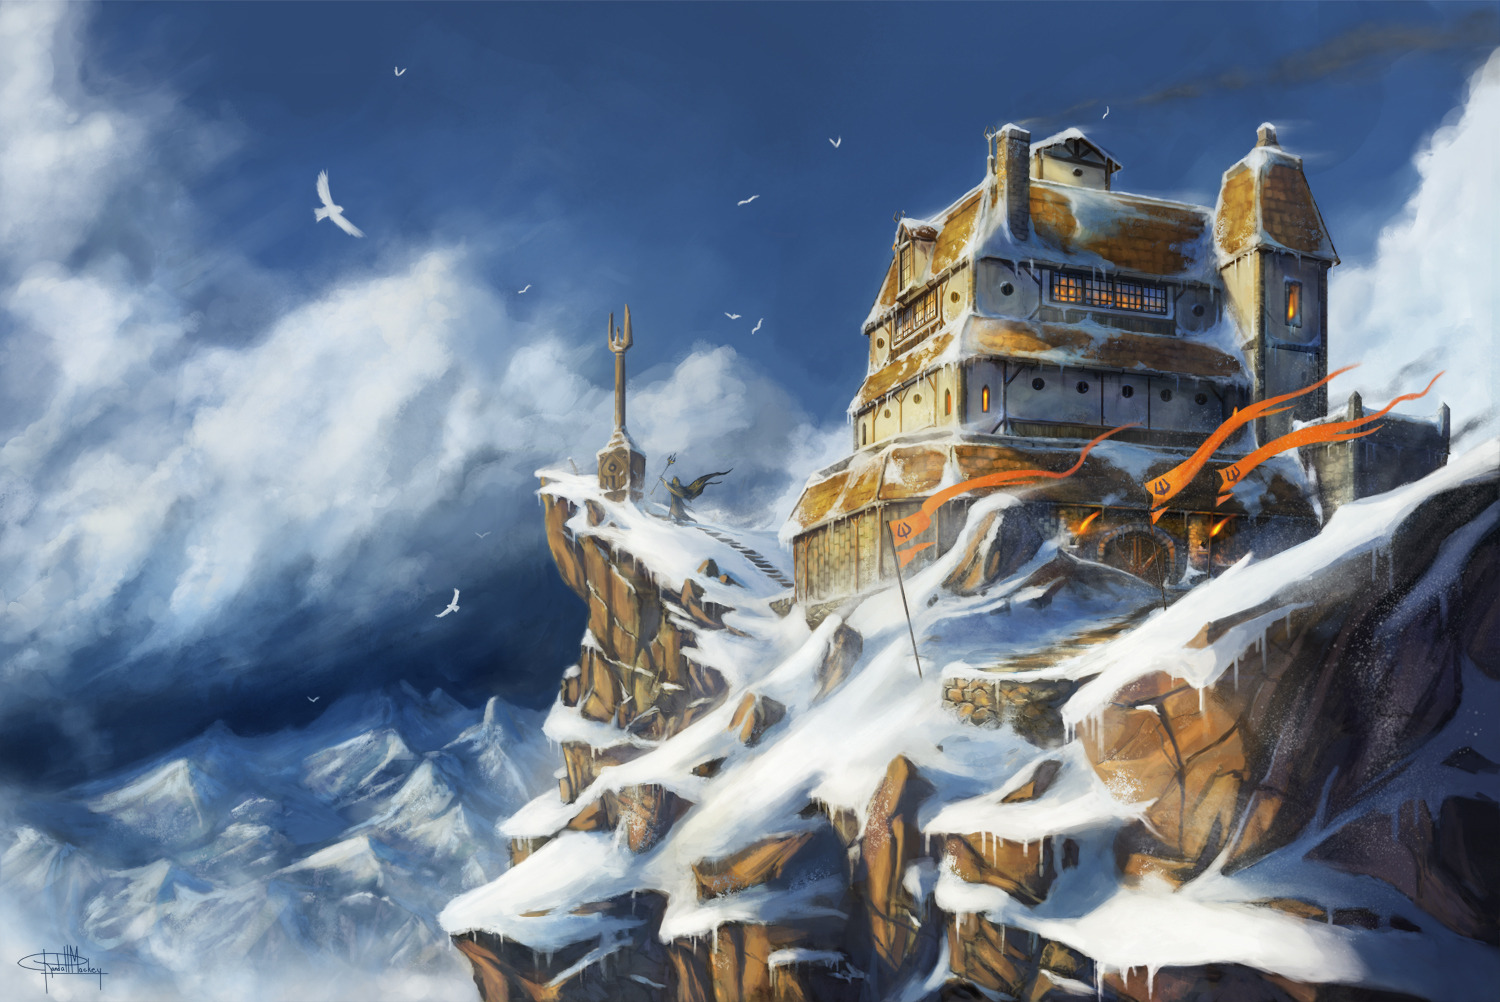 Wintry fortress